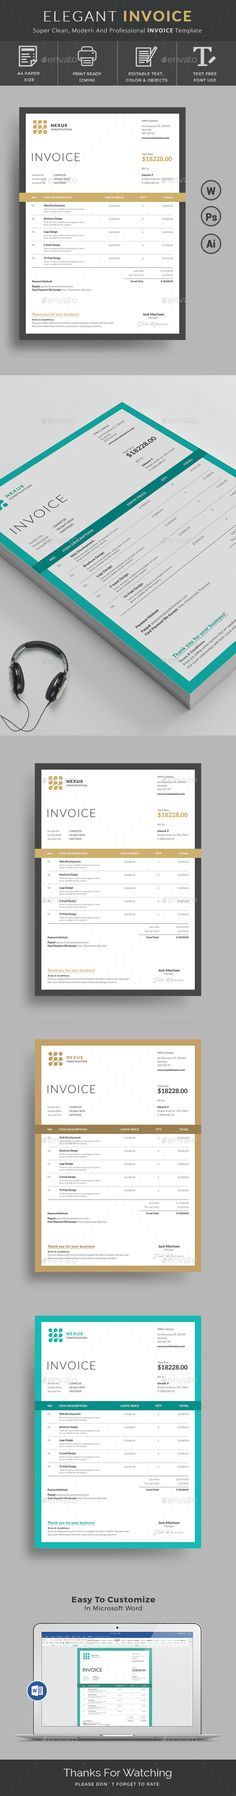 Template Use this Clean Invoice for personal, or company billing purpose. This Simple Invoice will help you to create your invoice very quick and easy. Elegant Invoice Design will convey your brand identity as well as Professional Invoice look. Invoice Design Template, Stationery Templates, Stationery Paper, Stationery Design, Print Templates, Brochure Design, Brochure Template, Business Templates, Change Logo